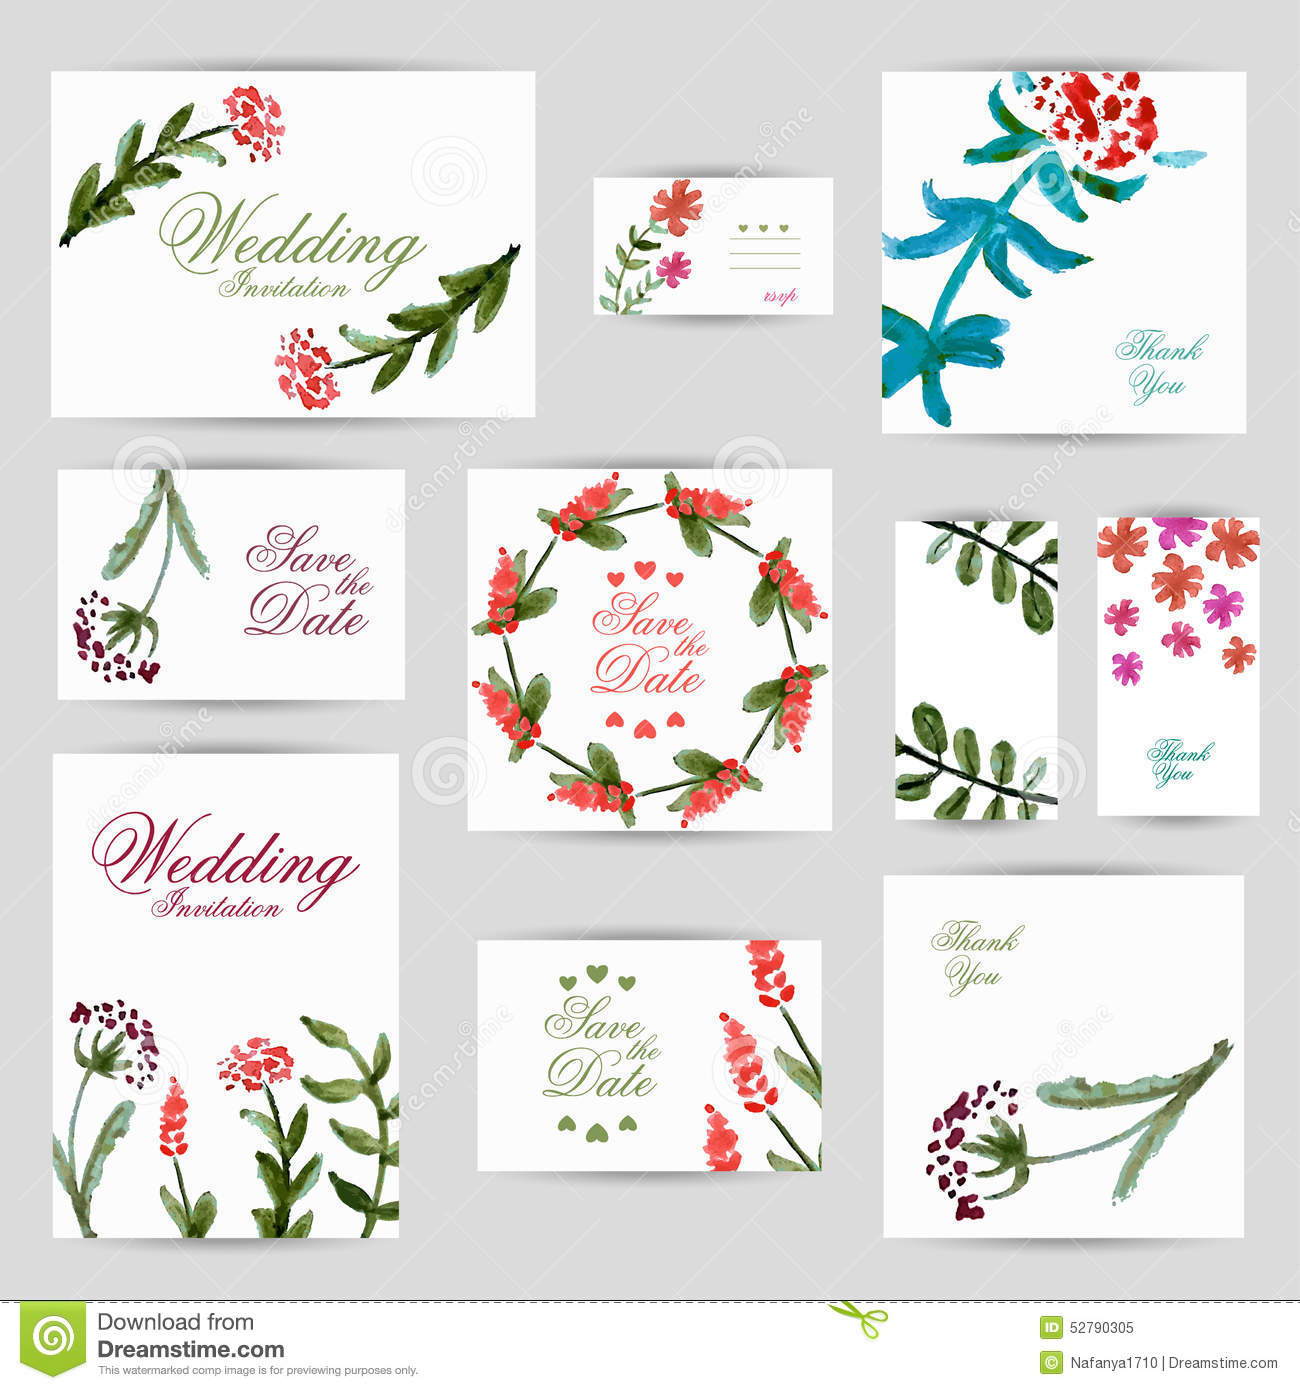 Wedding Invitation, Thank You Card, Save The Date Cards. RSVP Card ...